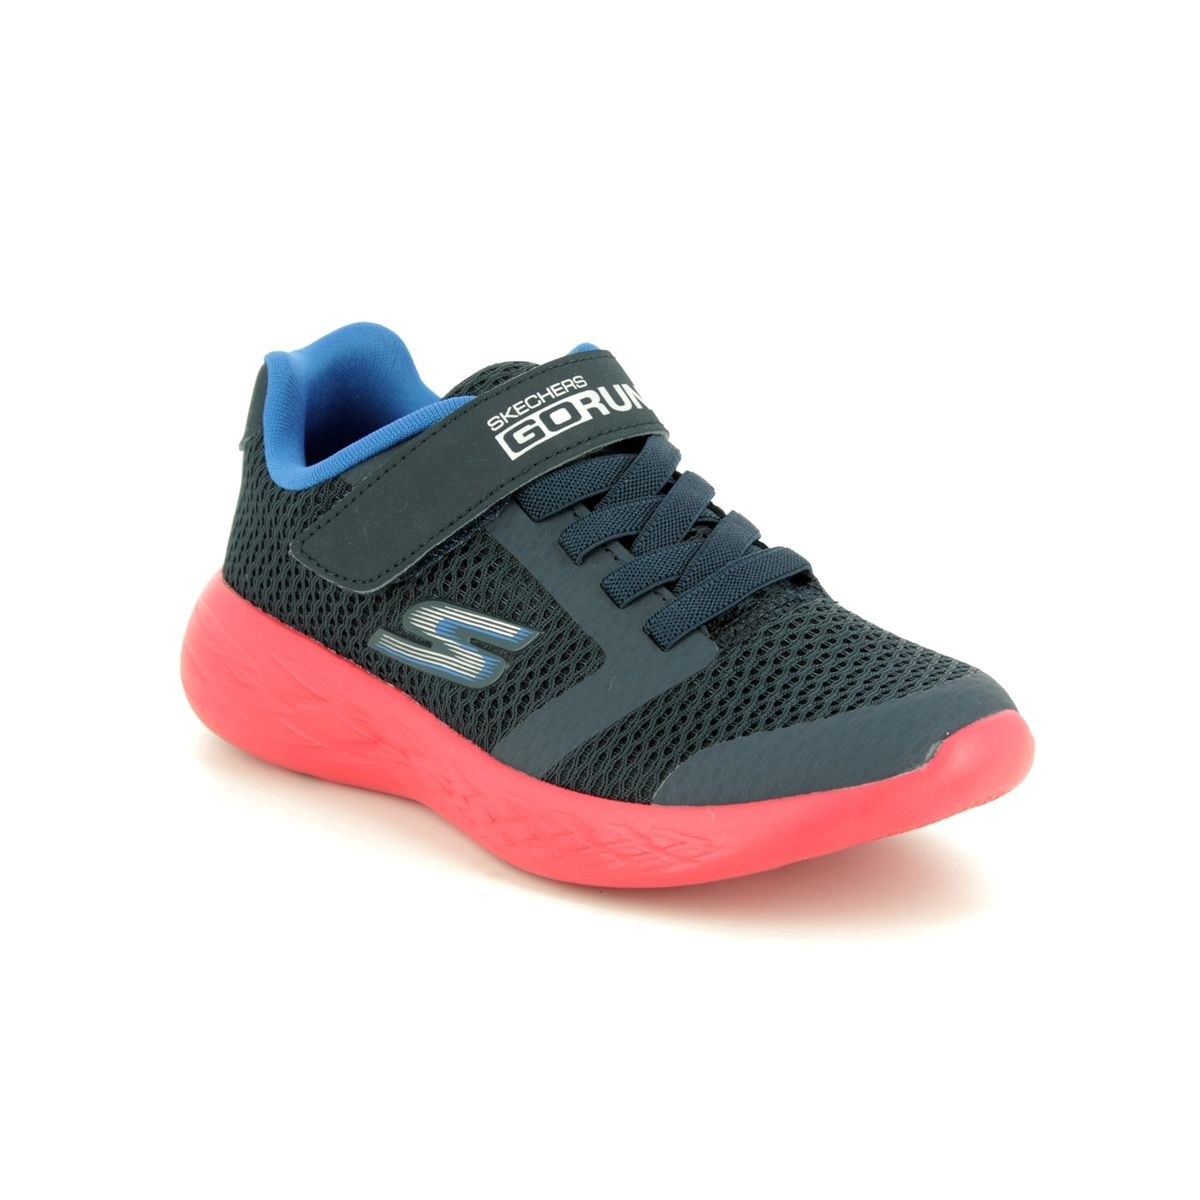 252c648ad364 Skechers Go Run 600 97860 NVRD Navy-Red trainers